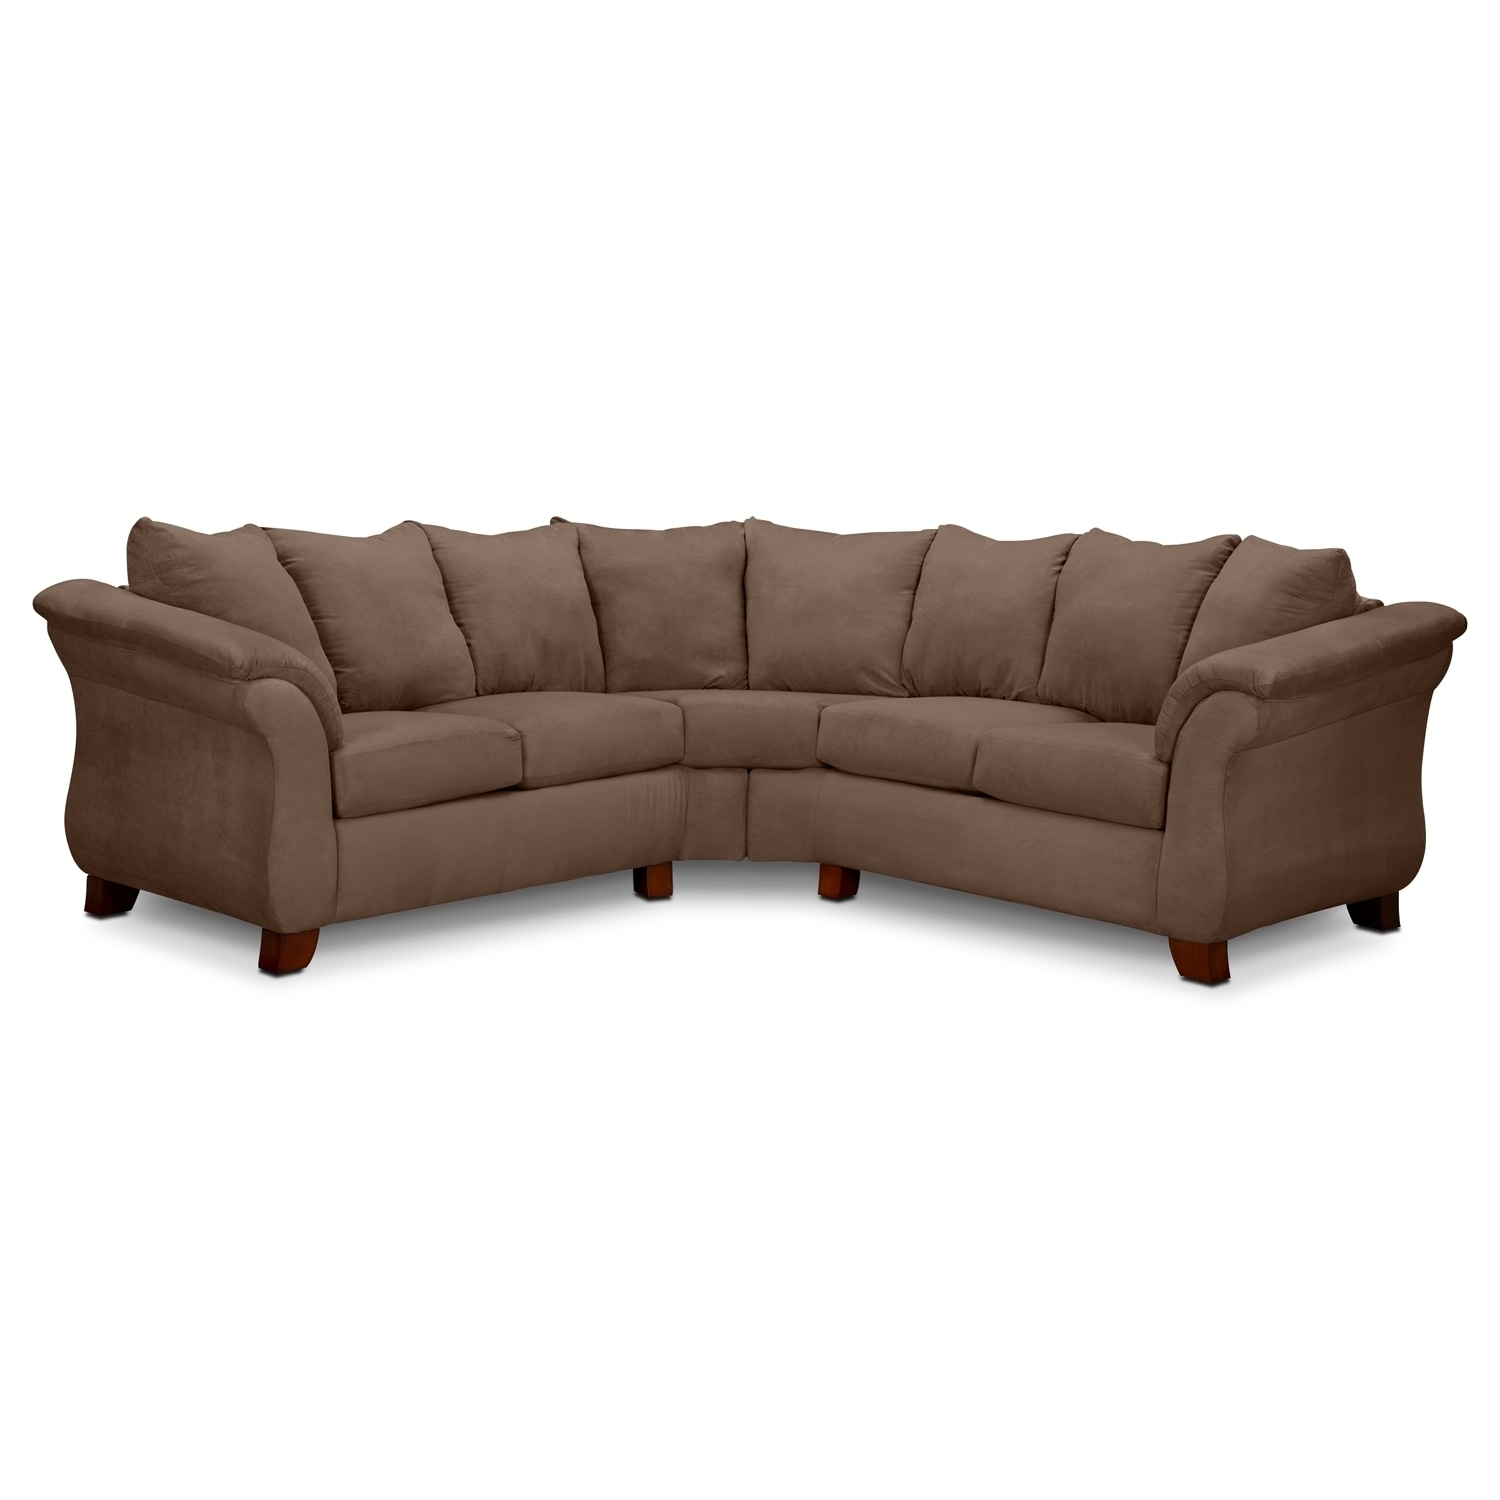 Adrian 2 Piece Sectional – Taupe | American Signature Furniture Throughout Naples Fl Sectional Sofas (View 10 of 10)